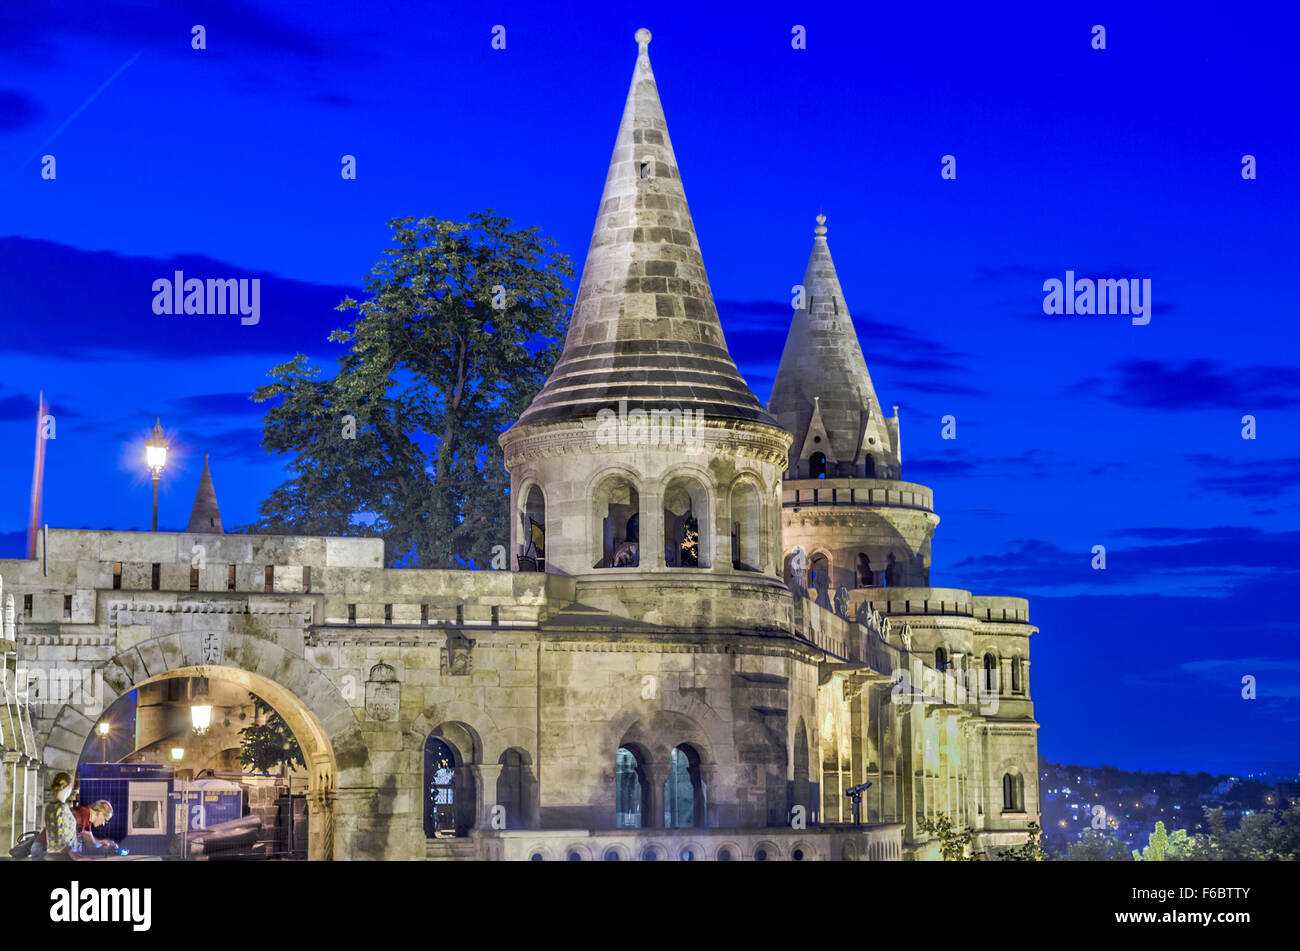 Hungary, Budapest. Fisherman's Bastion at dusk. - Stock Image